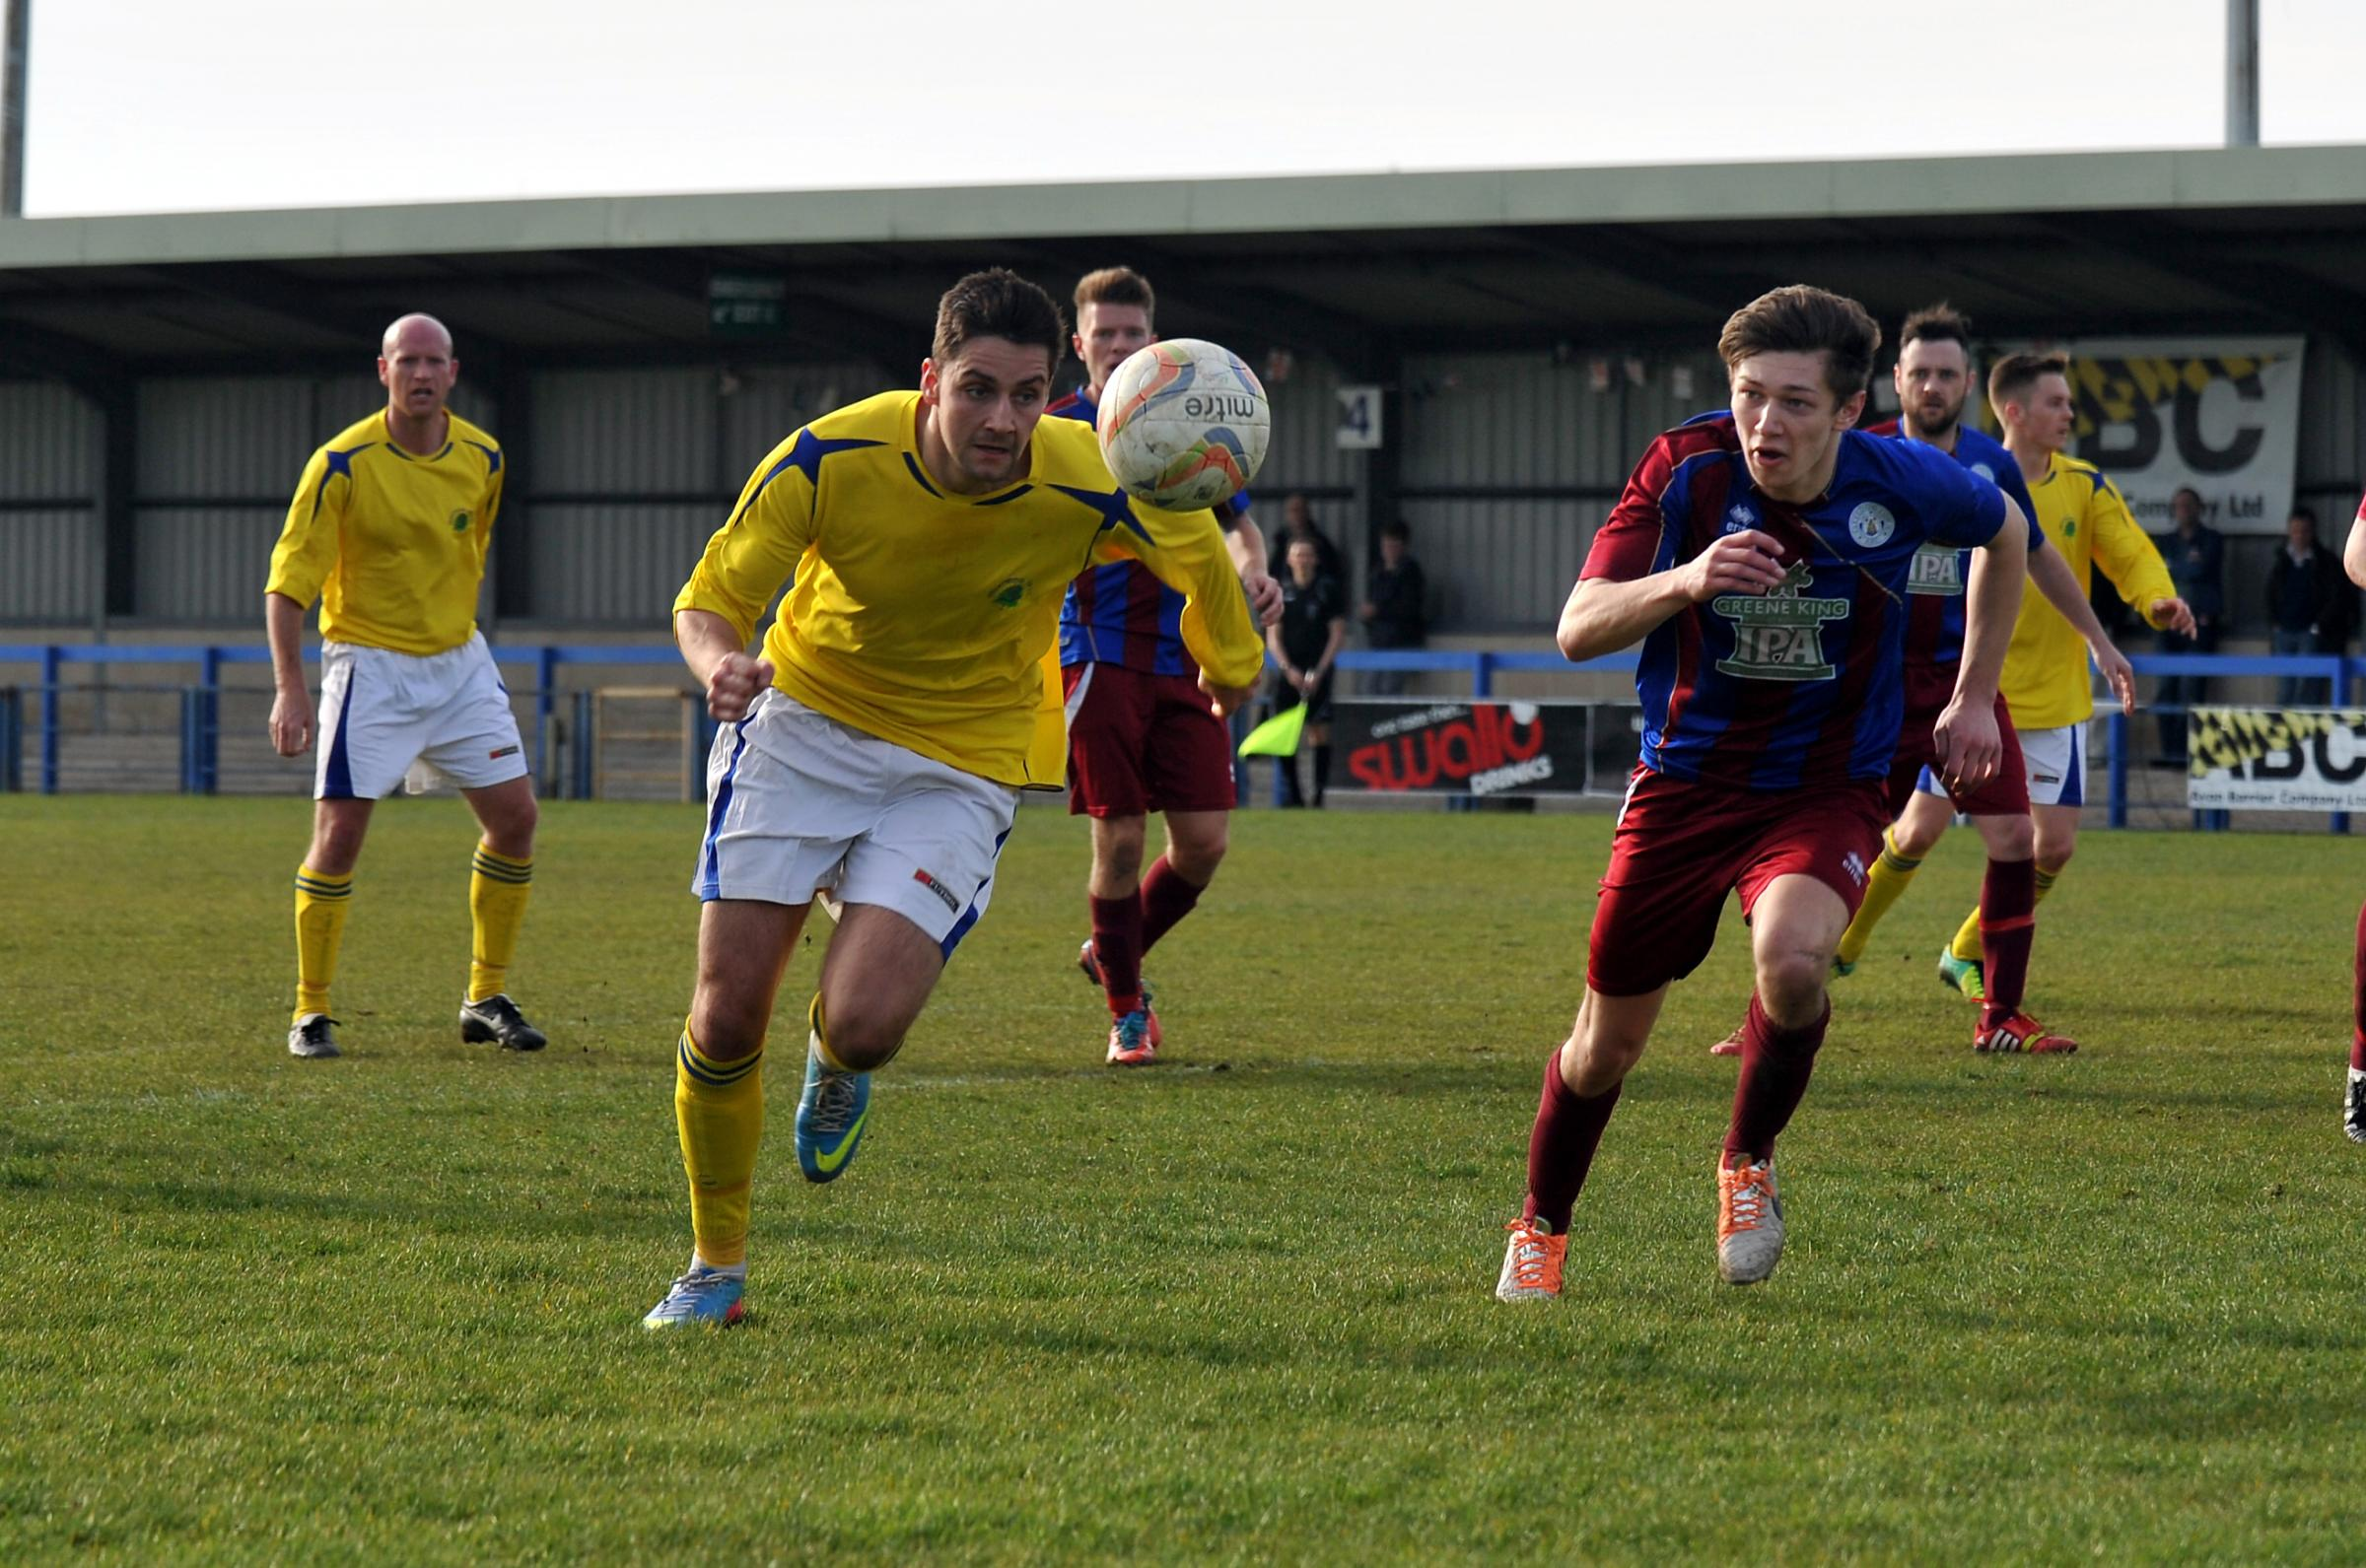 Duncan Culley was on target for Shortwood              Pic: Brian Rossiter